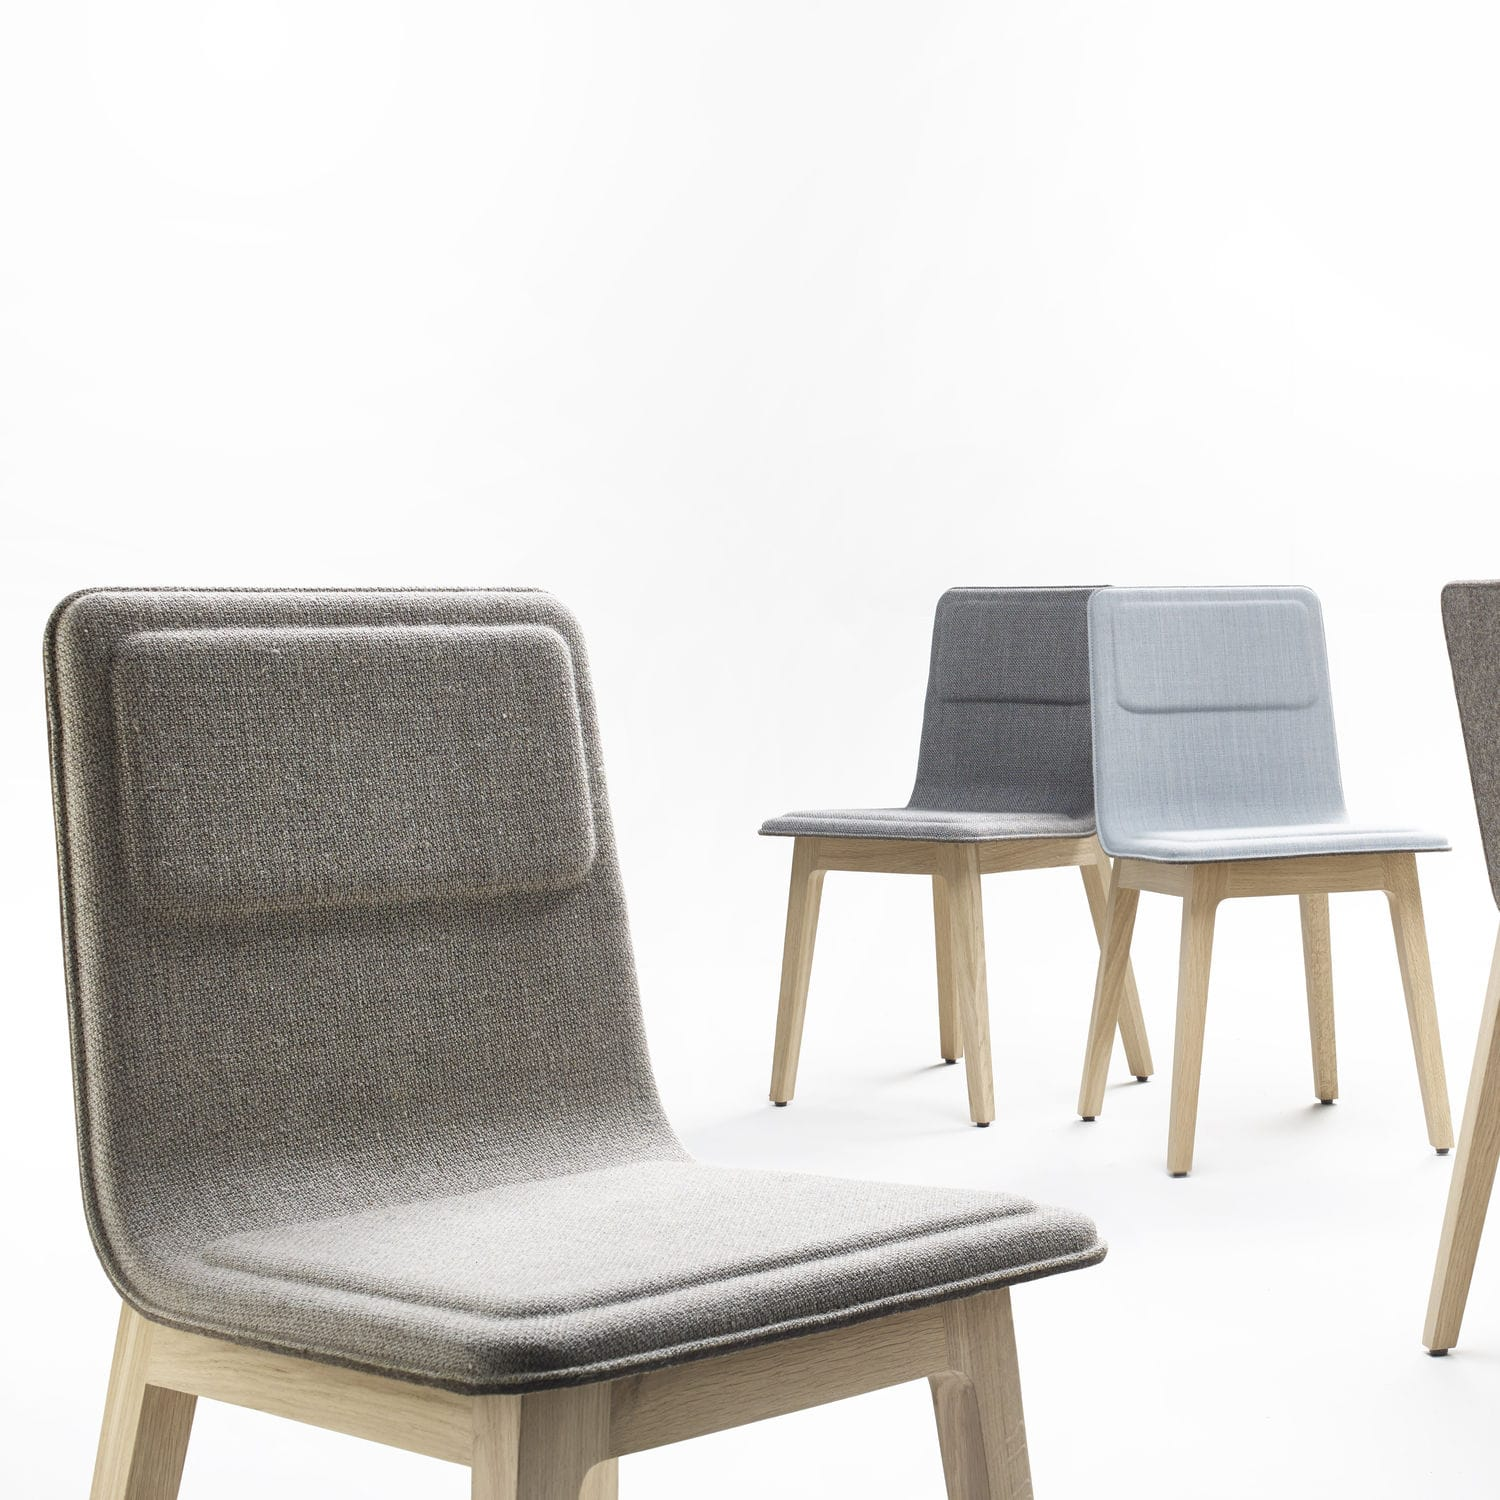 contemporary chair  fabric  oak  leather  laia by jeanlouis  - contemporary chair  fabric  oak  leather  laia by jeanlouis iratzoki